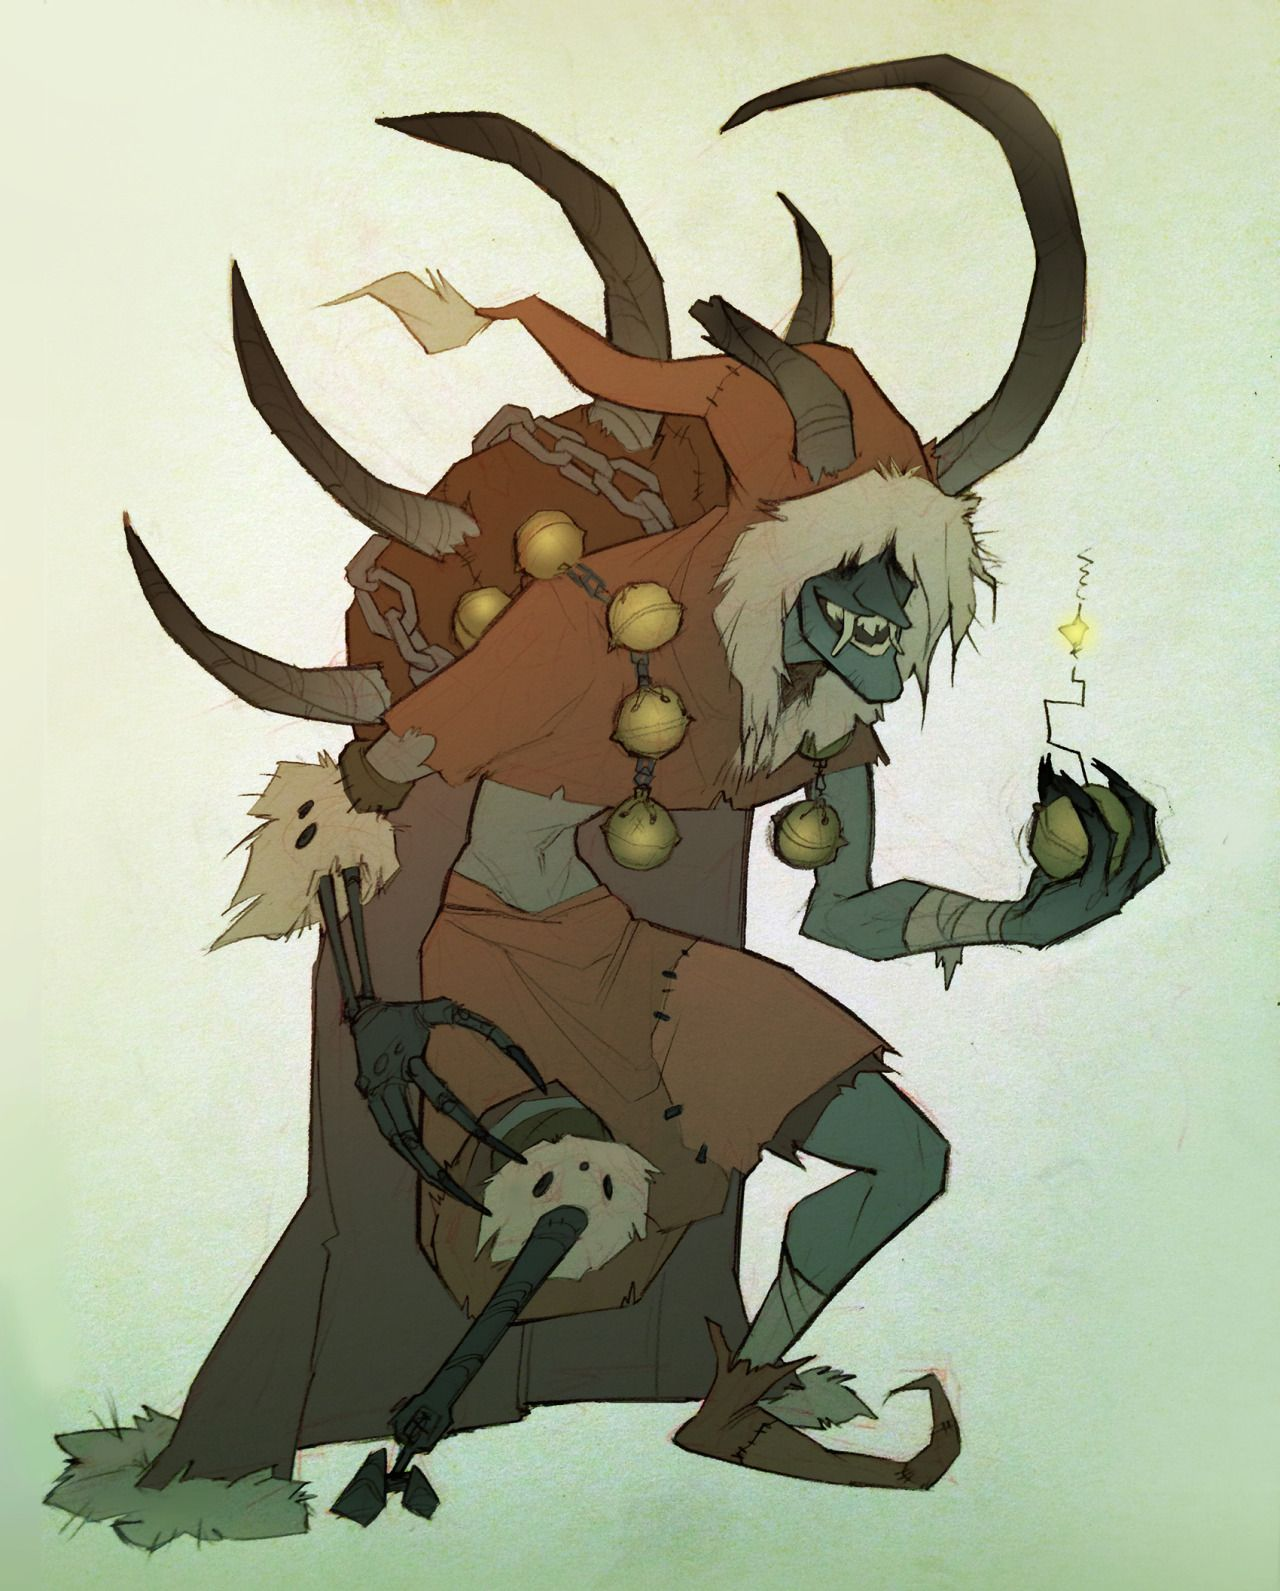 If Junkrat had a Krampus skin for Christmas... | Overwatch in 2018 ...